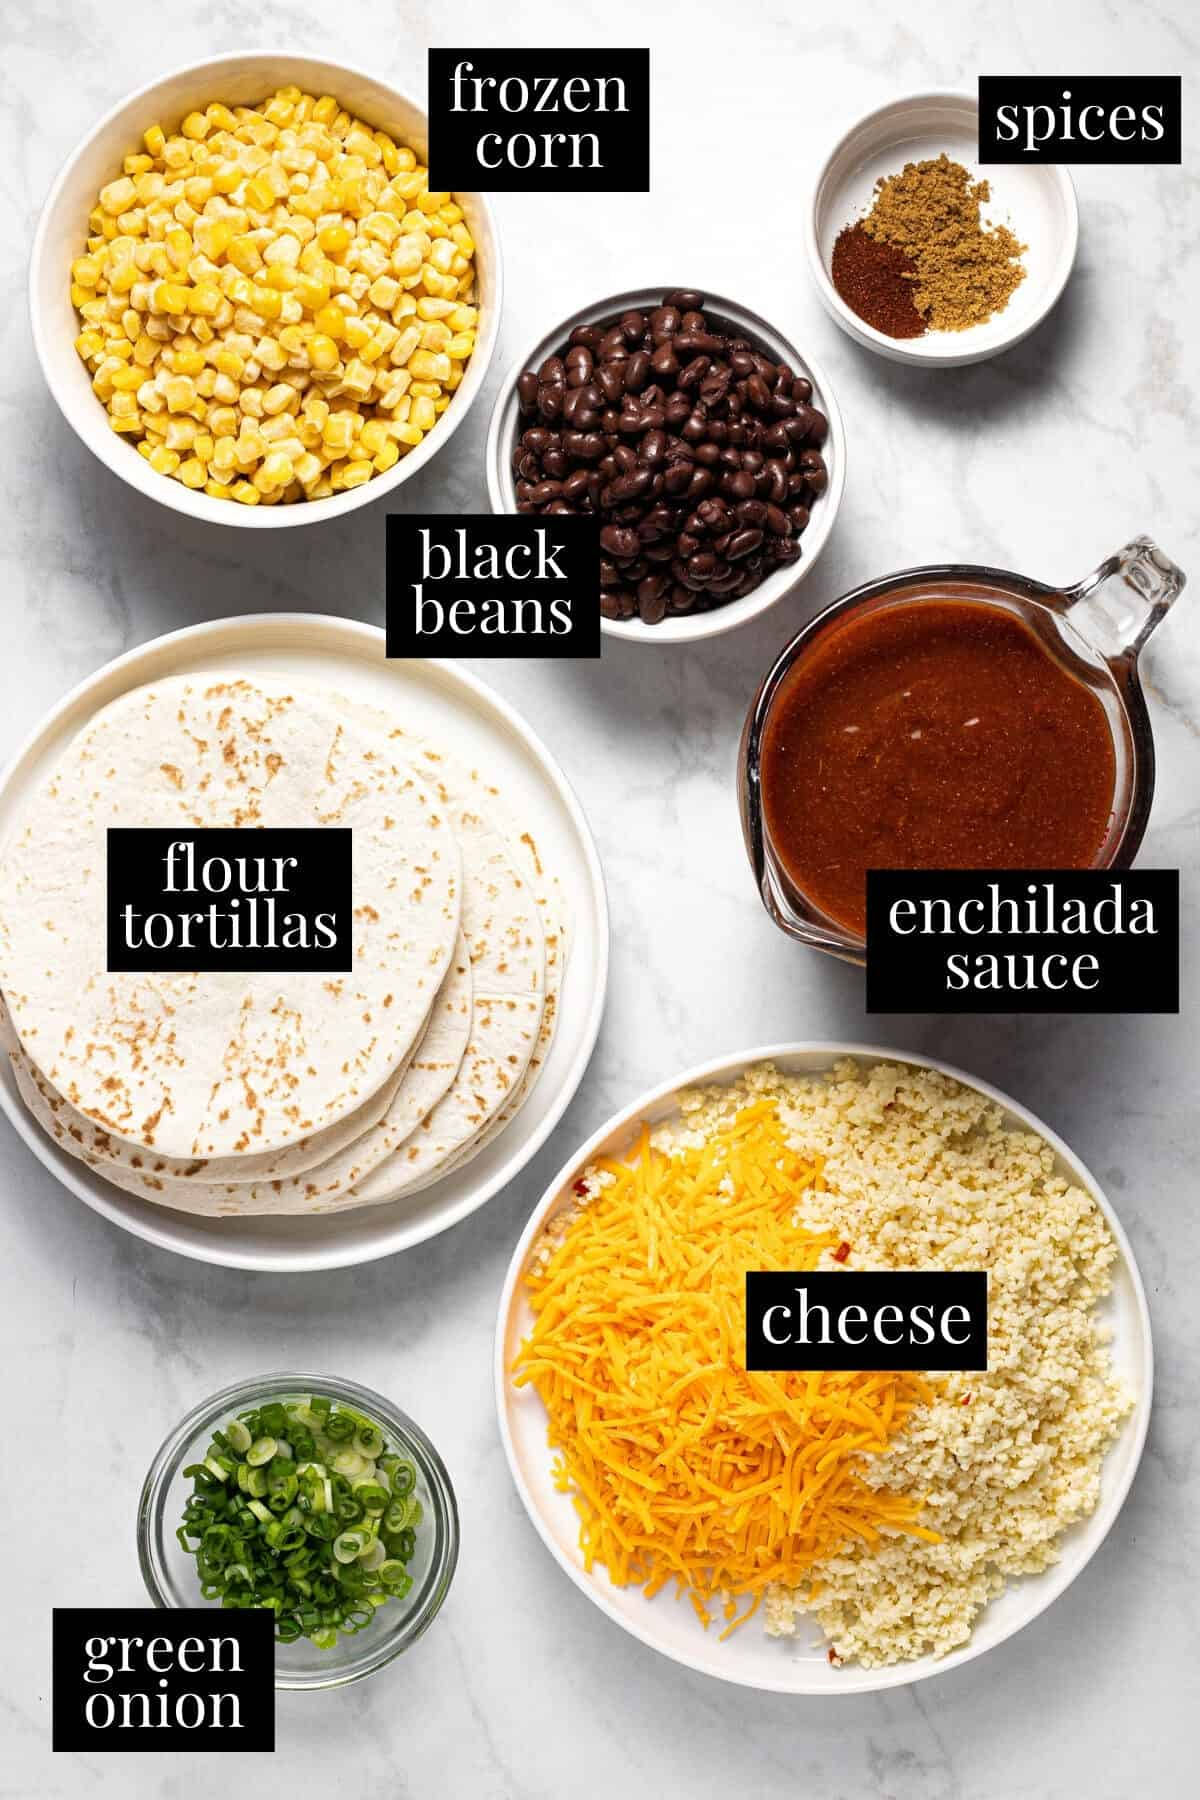 White marble counter top filled with ingredients to make black bean and corn enchiladas